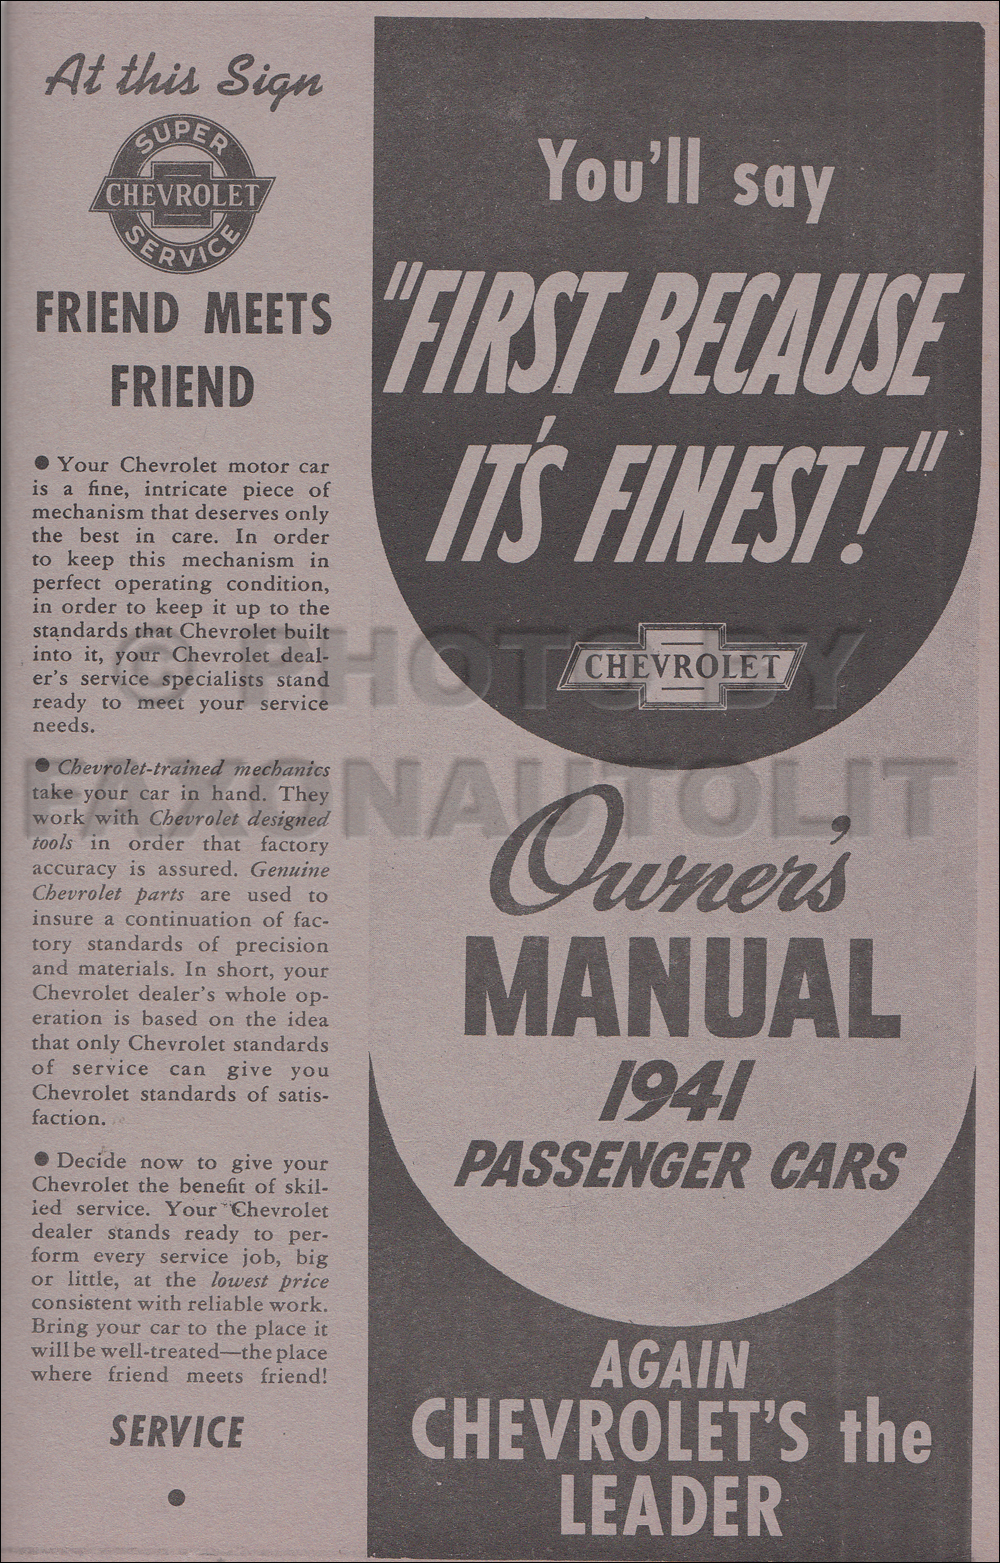 1941 Chevrolet Car Owner's Manual Reprint, older edition